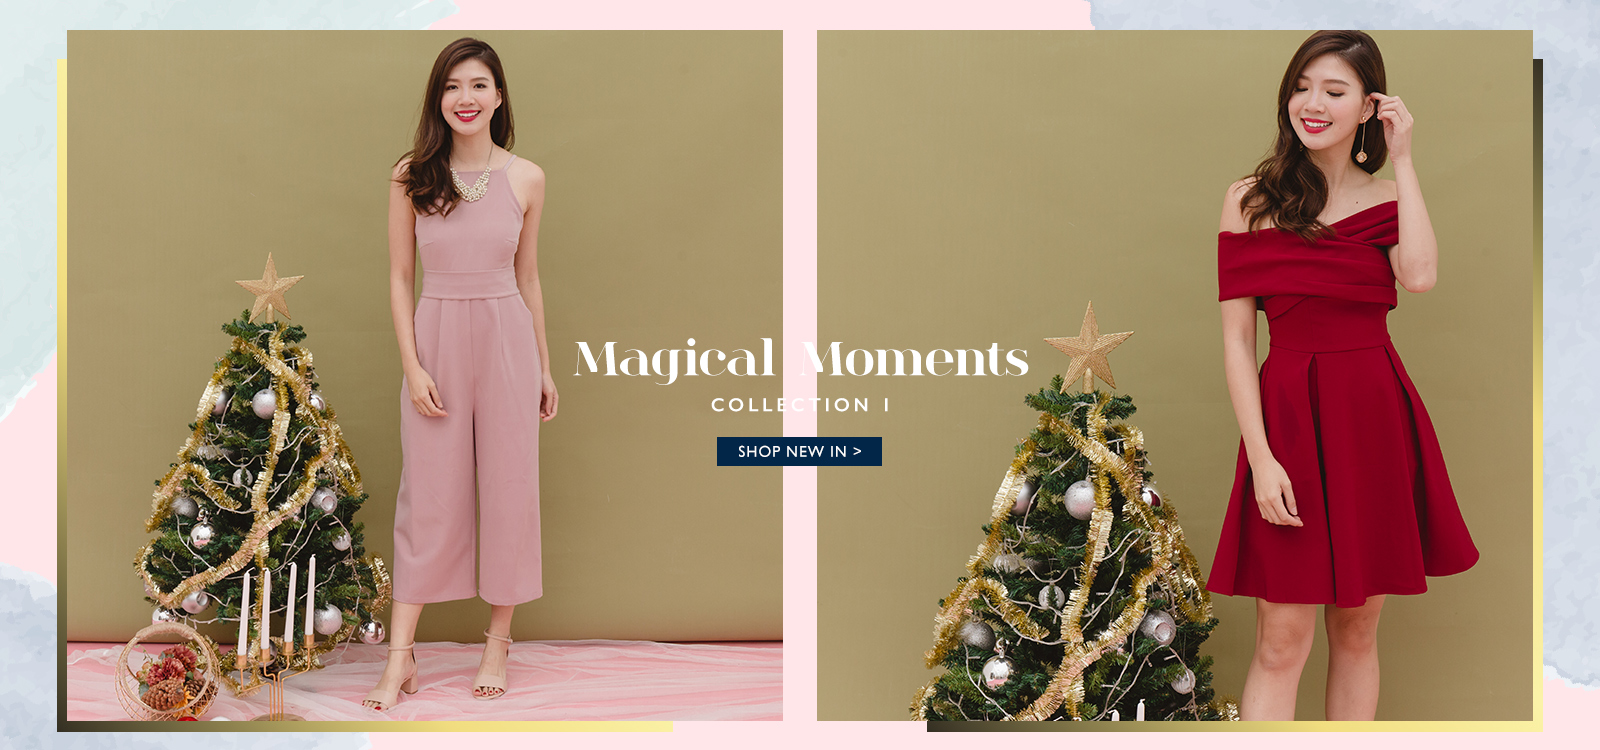 Magical Moments Collection One